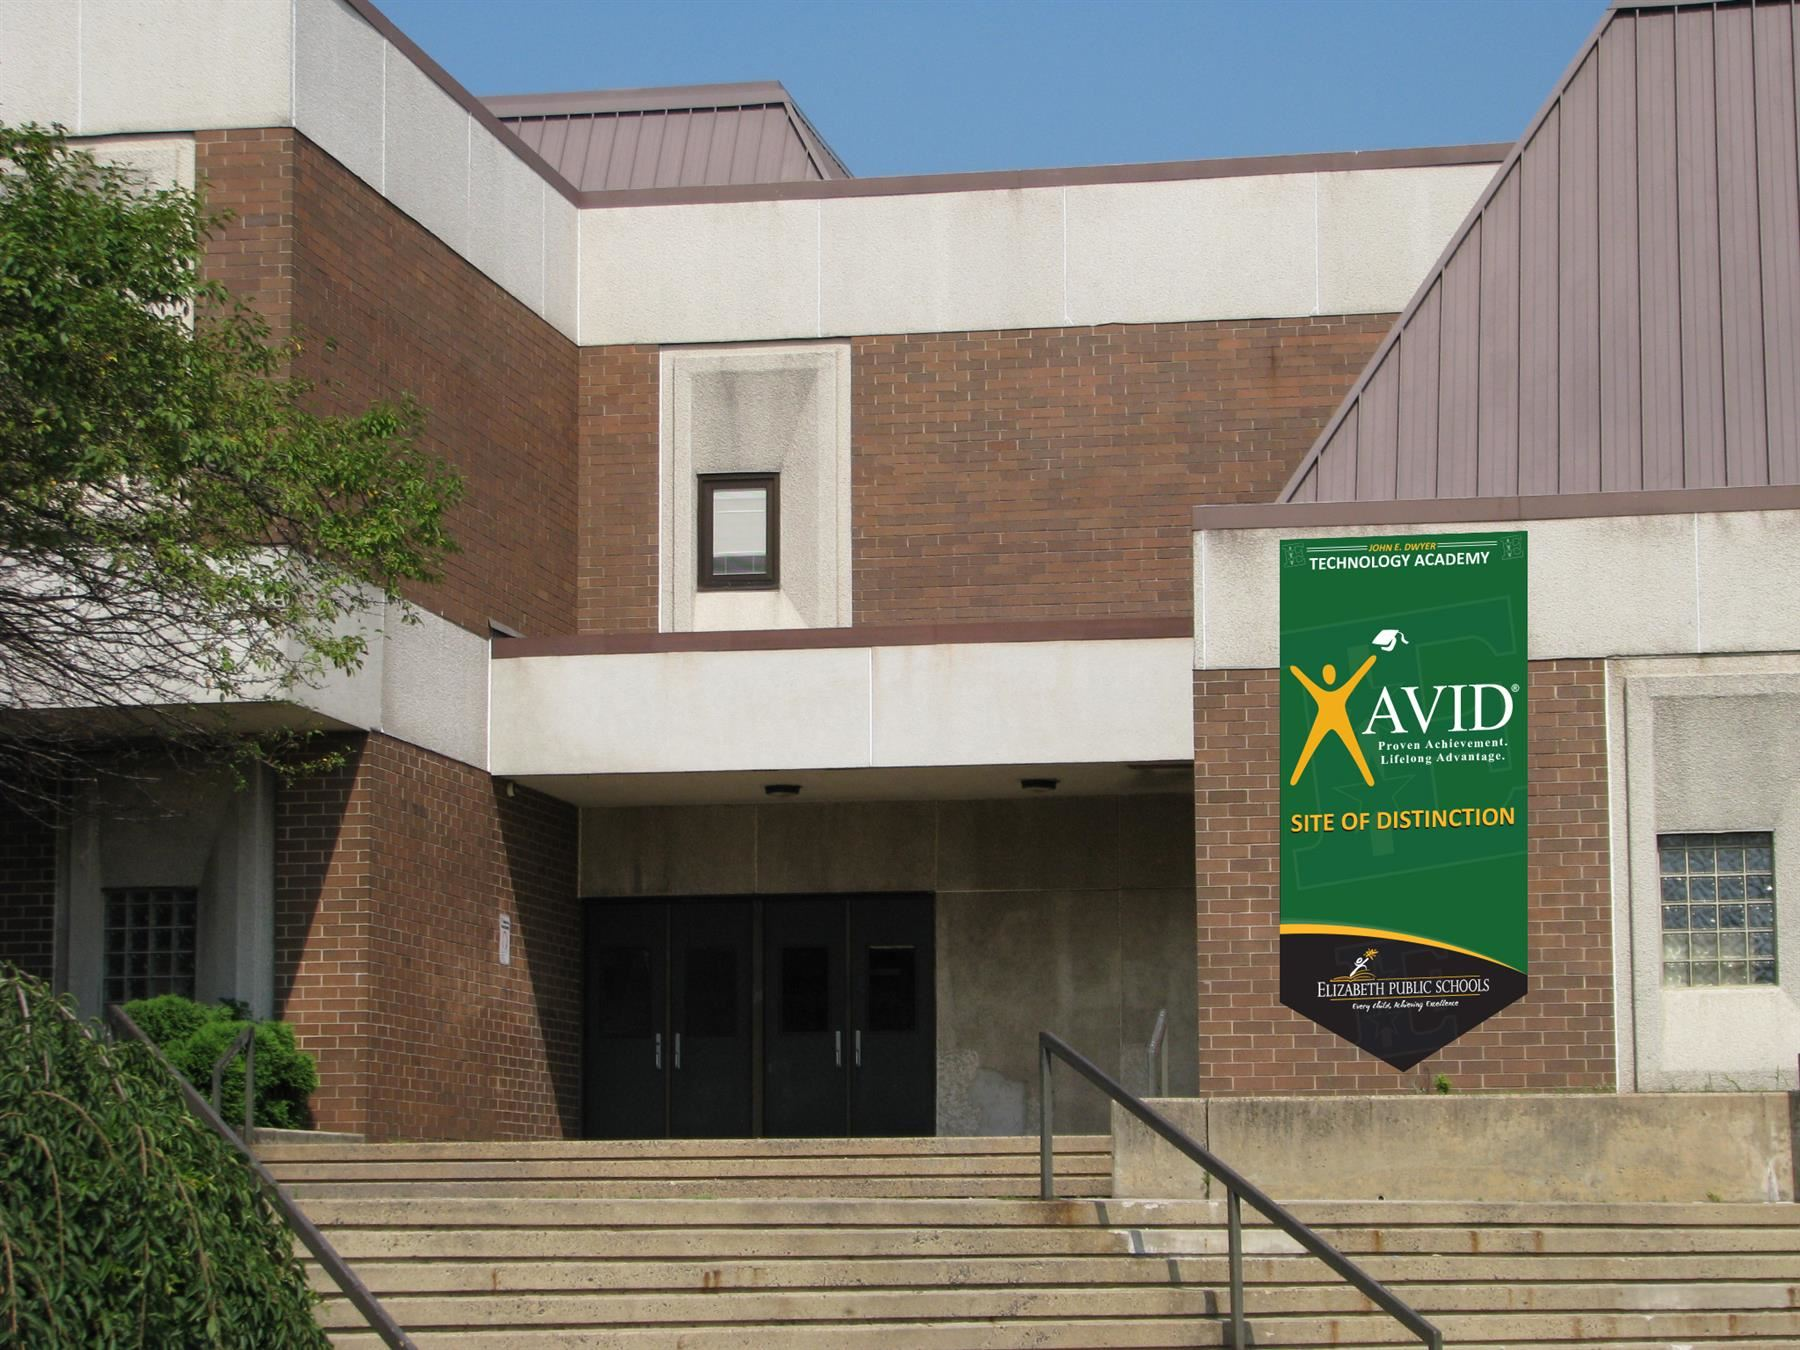 Dwyer Technology Academy Named AVID Schoolwide Site of Distinction